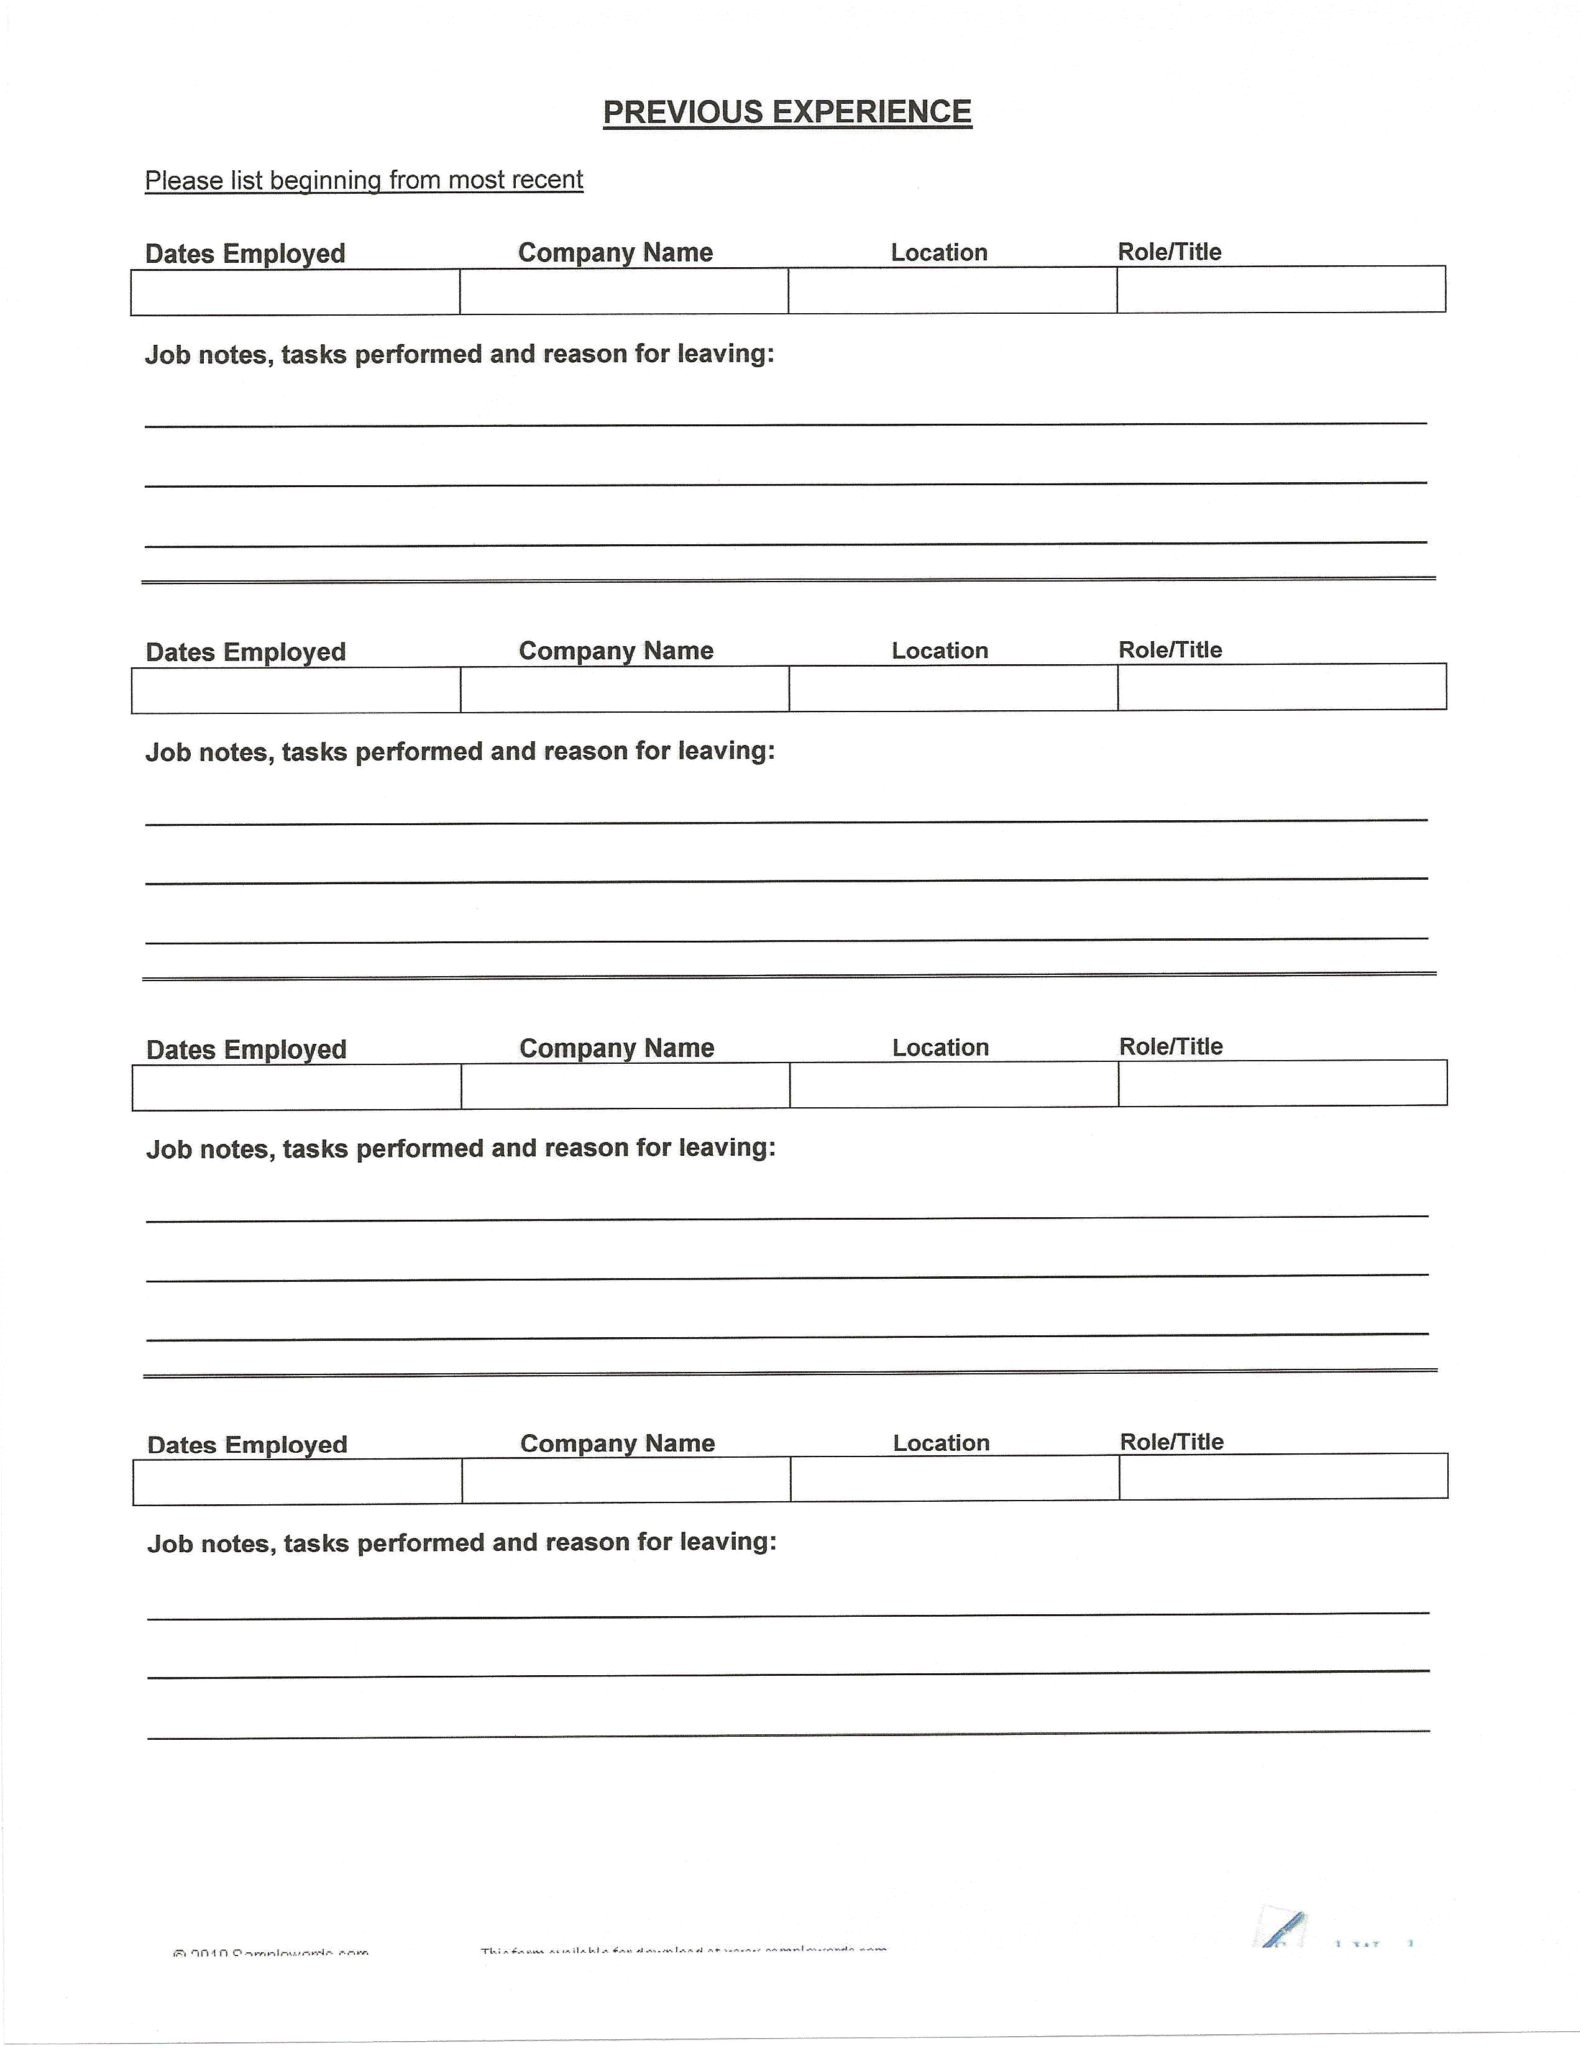 blank resume form to print out